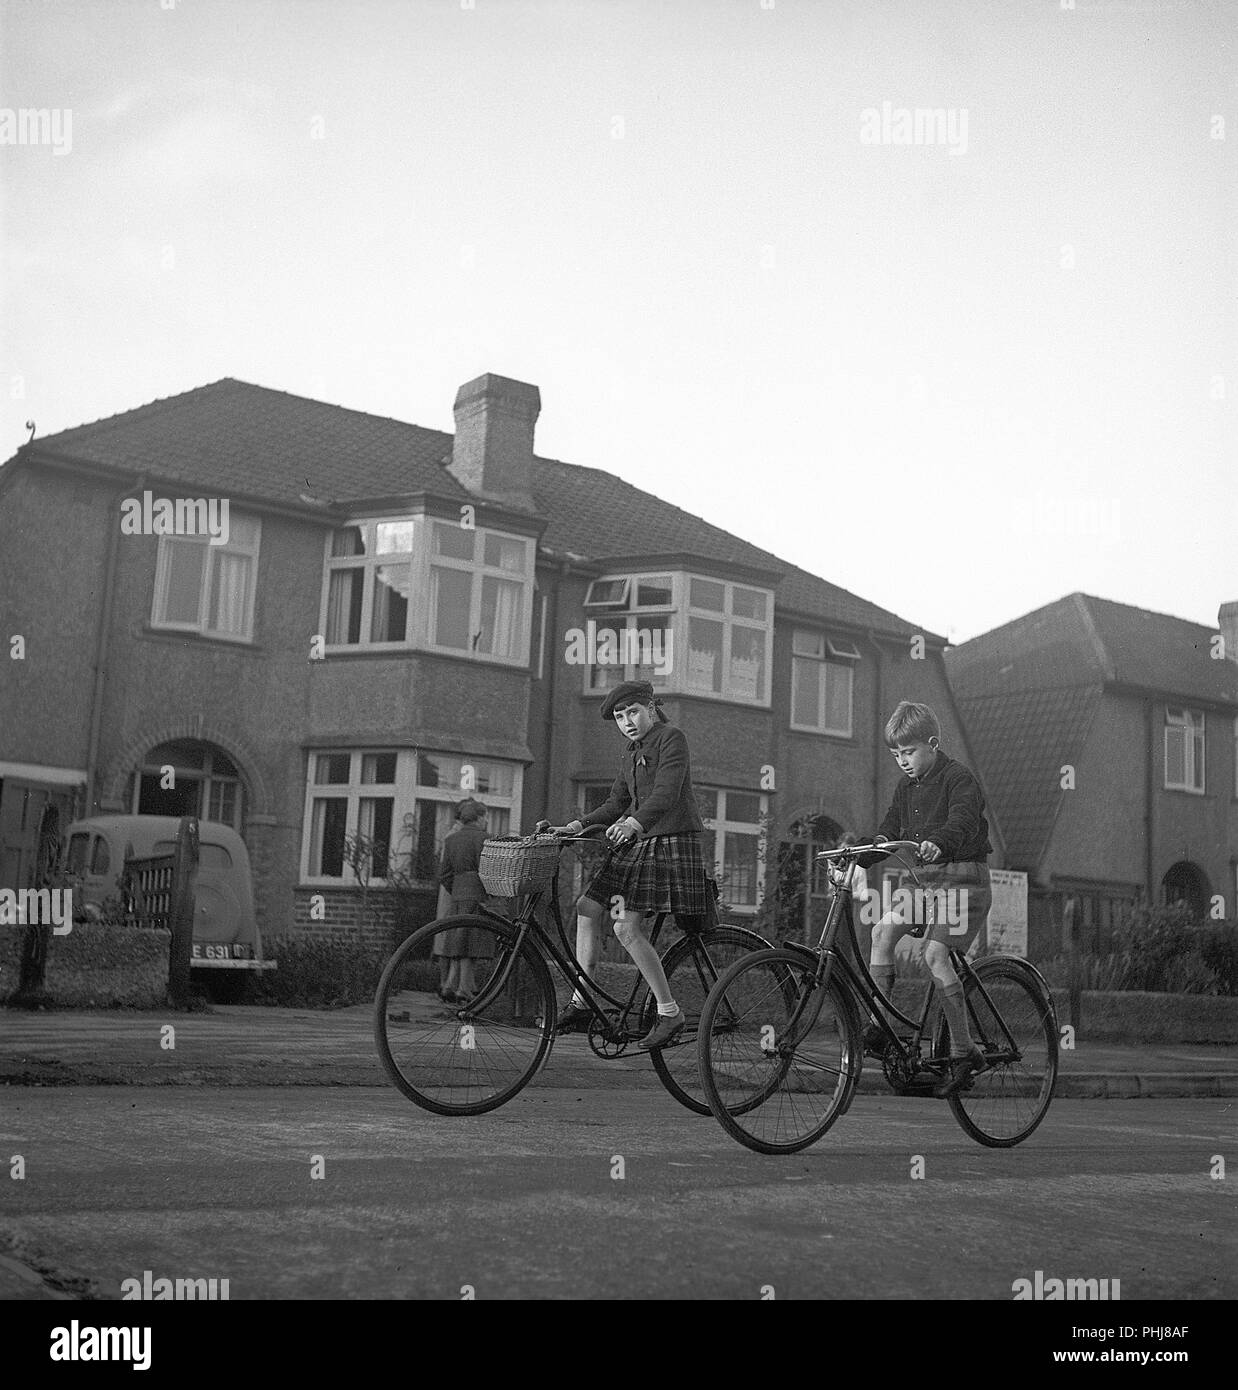 Great Britain 1945. Pictured here two english children cycling to school in the morning. Photo KG Kristoffersson who was in Great Britain 1945. ref S87-6 - Stock Image